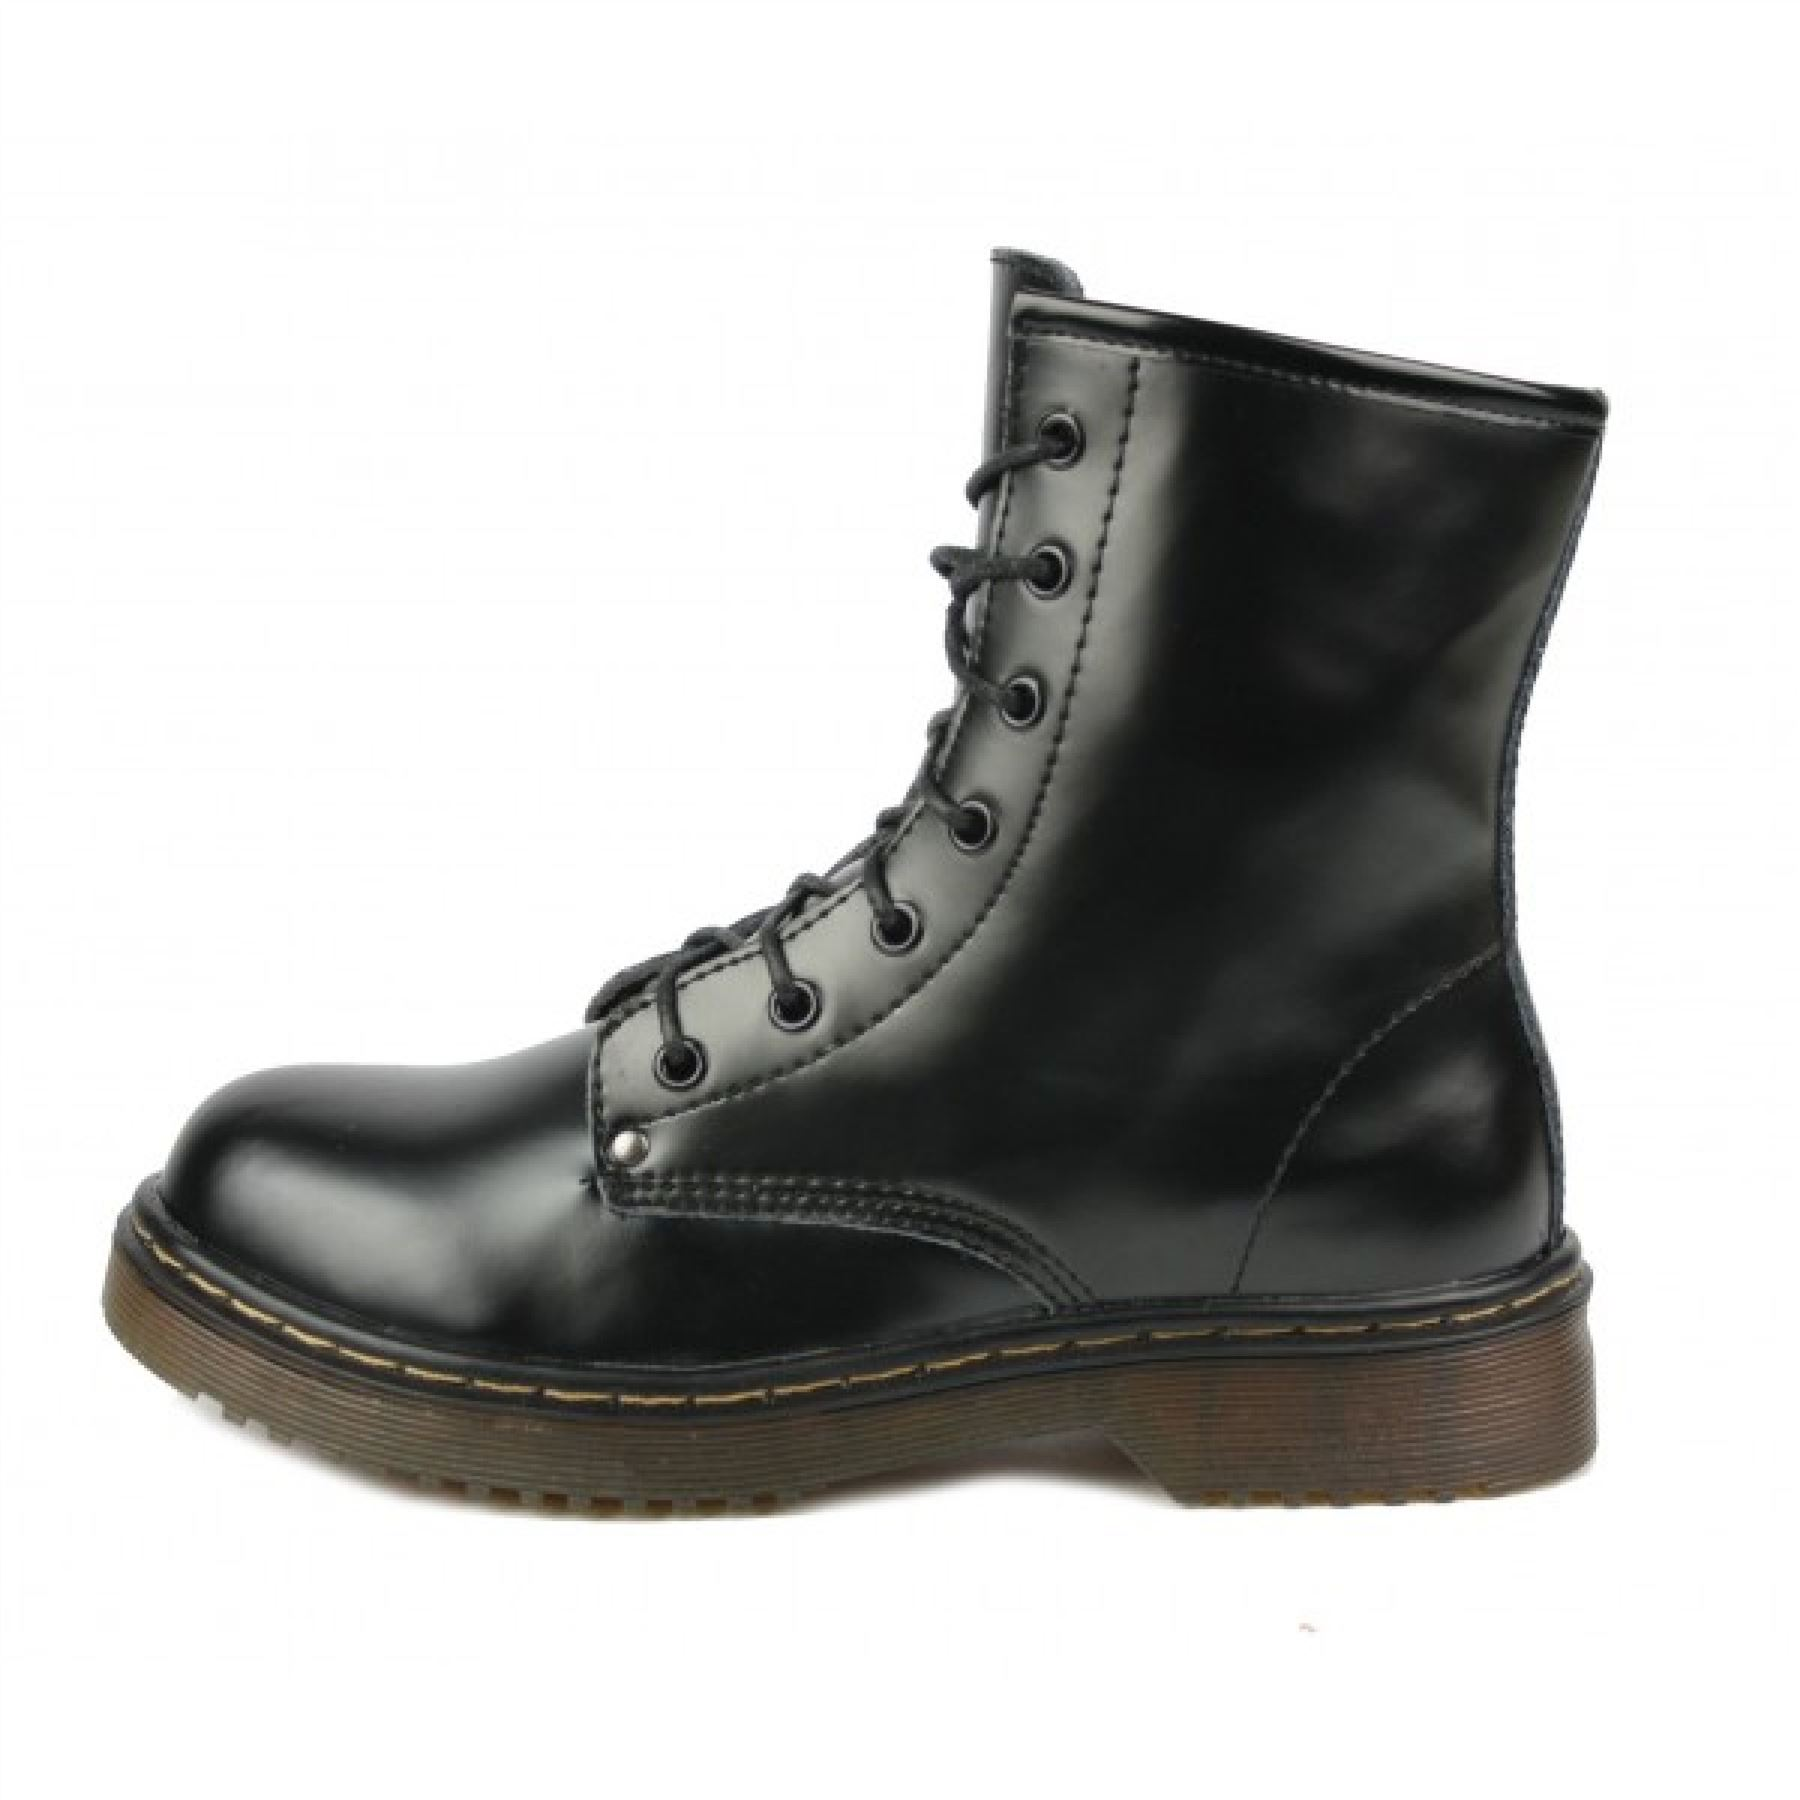 retro combat leather boots womens lace up vintage